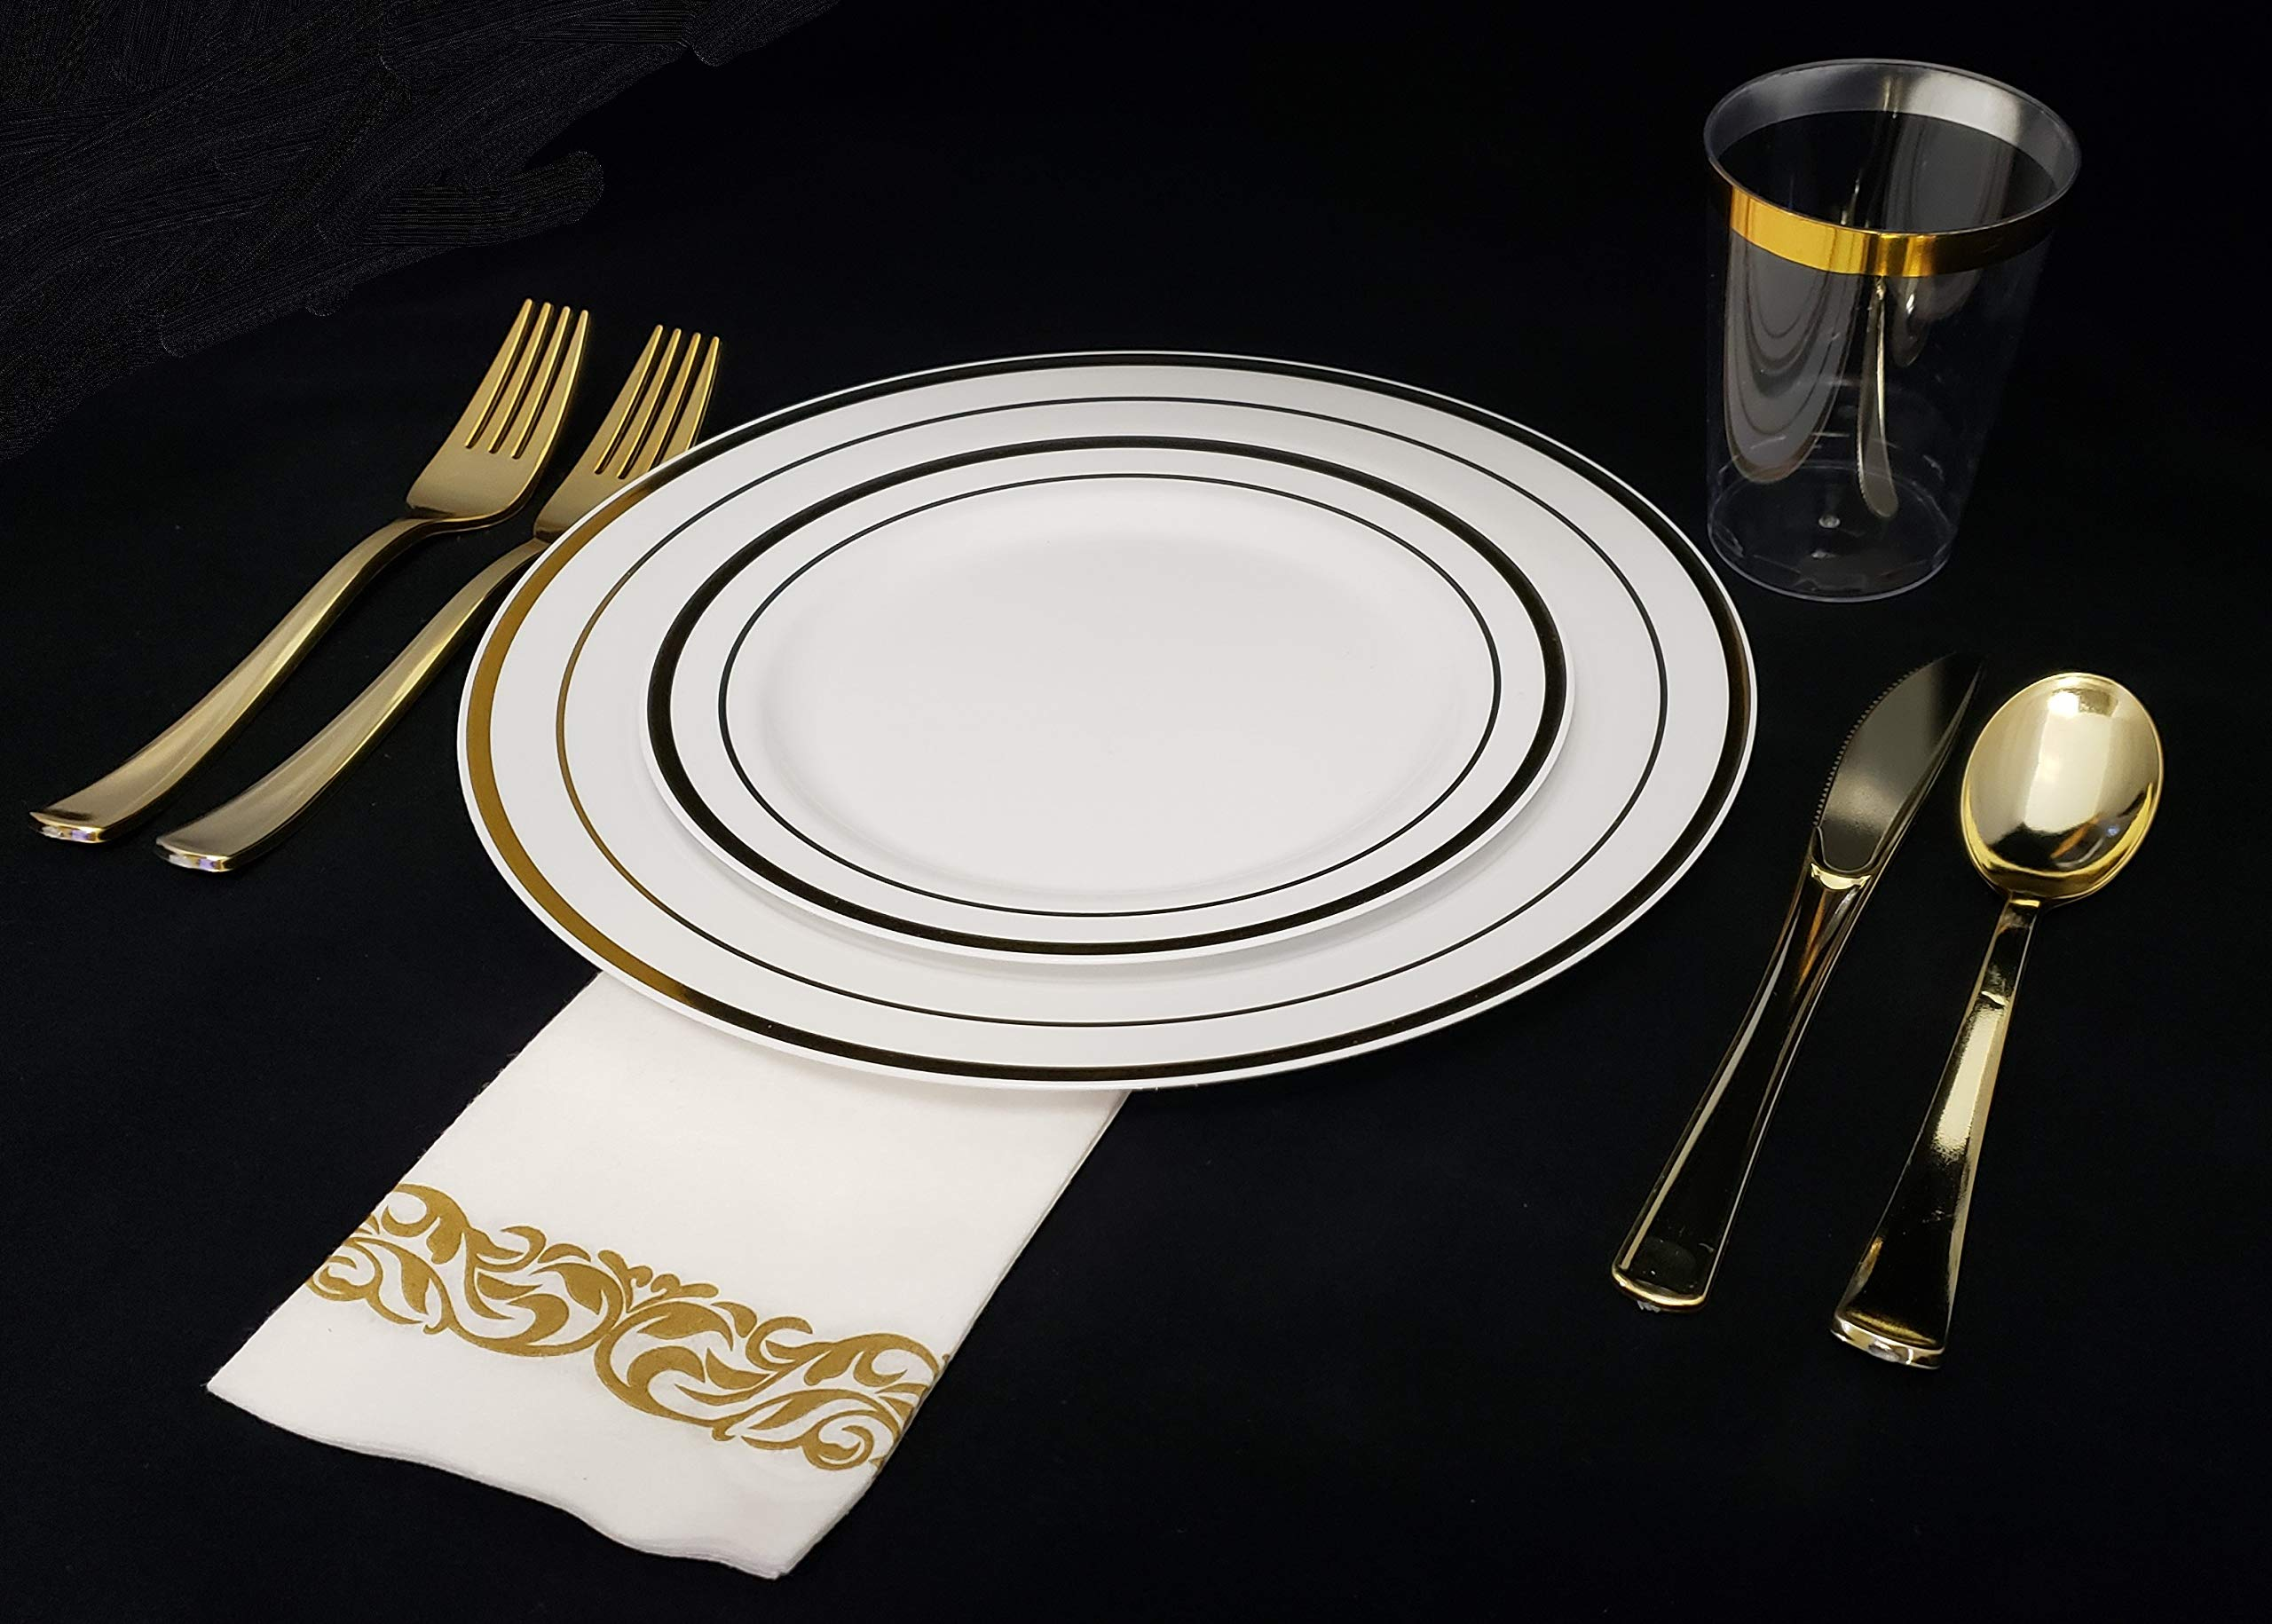 Disposable Plastic Plates - 60 Pack - 30 x 10.25'' Dinner and 30 x 7.5'' Salad Combo - Gold Trim Real China Design - Premium Heavy Duty - By Aya's Cutlery Kingdom by Aya's Cutlery Kingdom